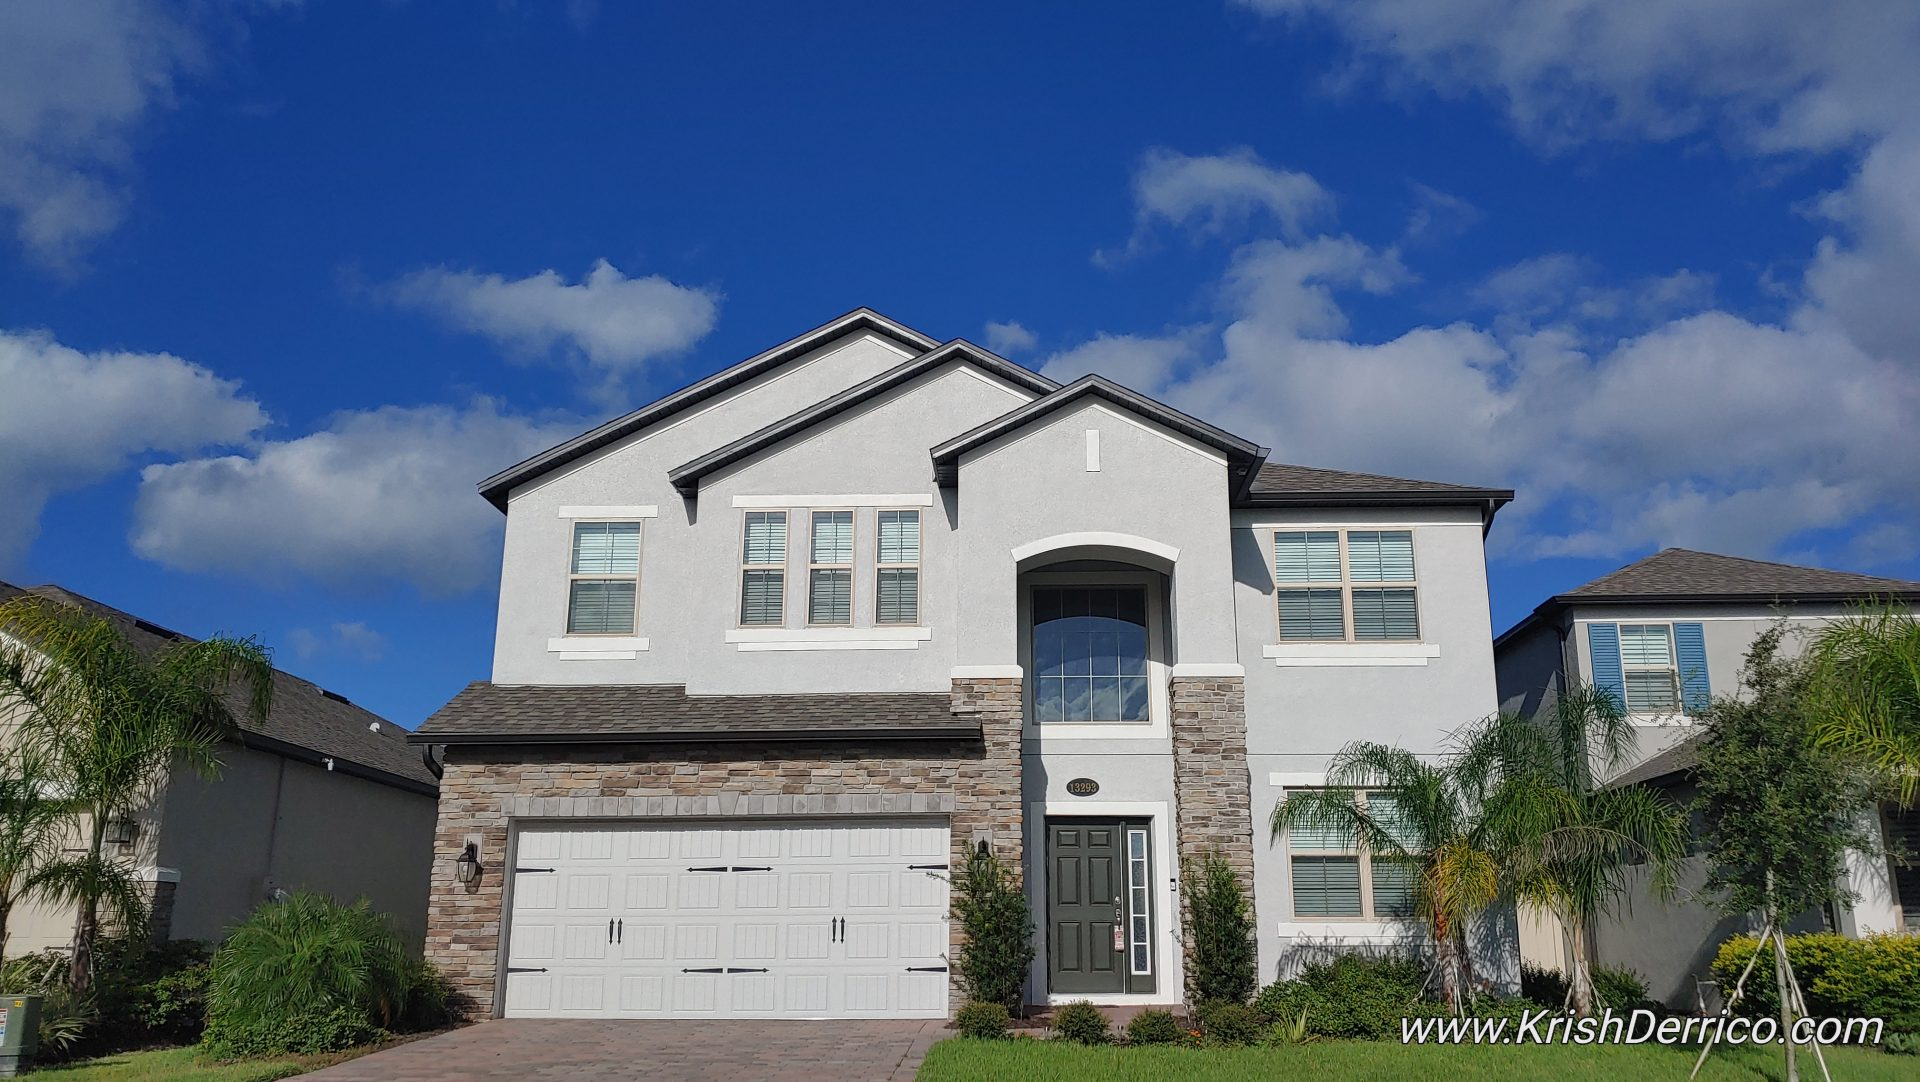 new homes clermont, fl